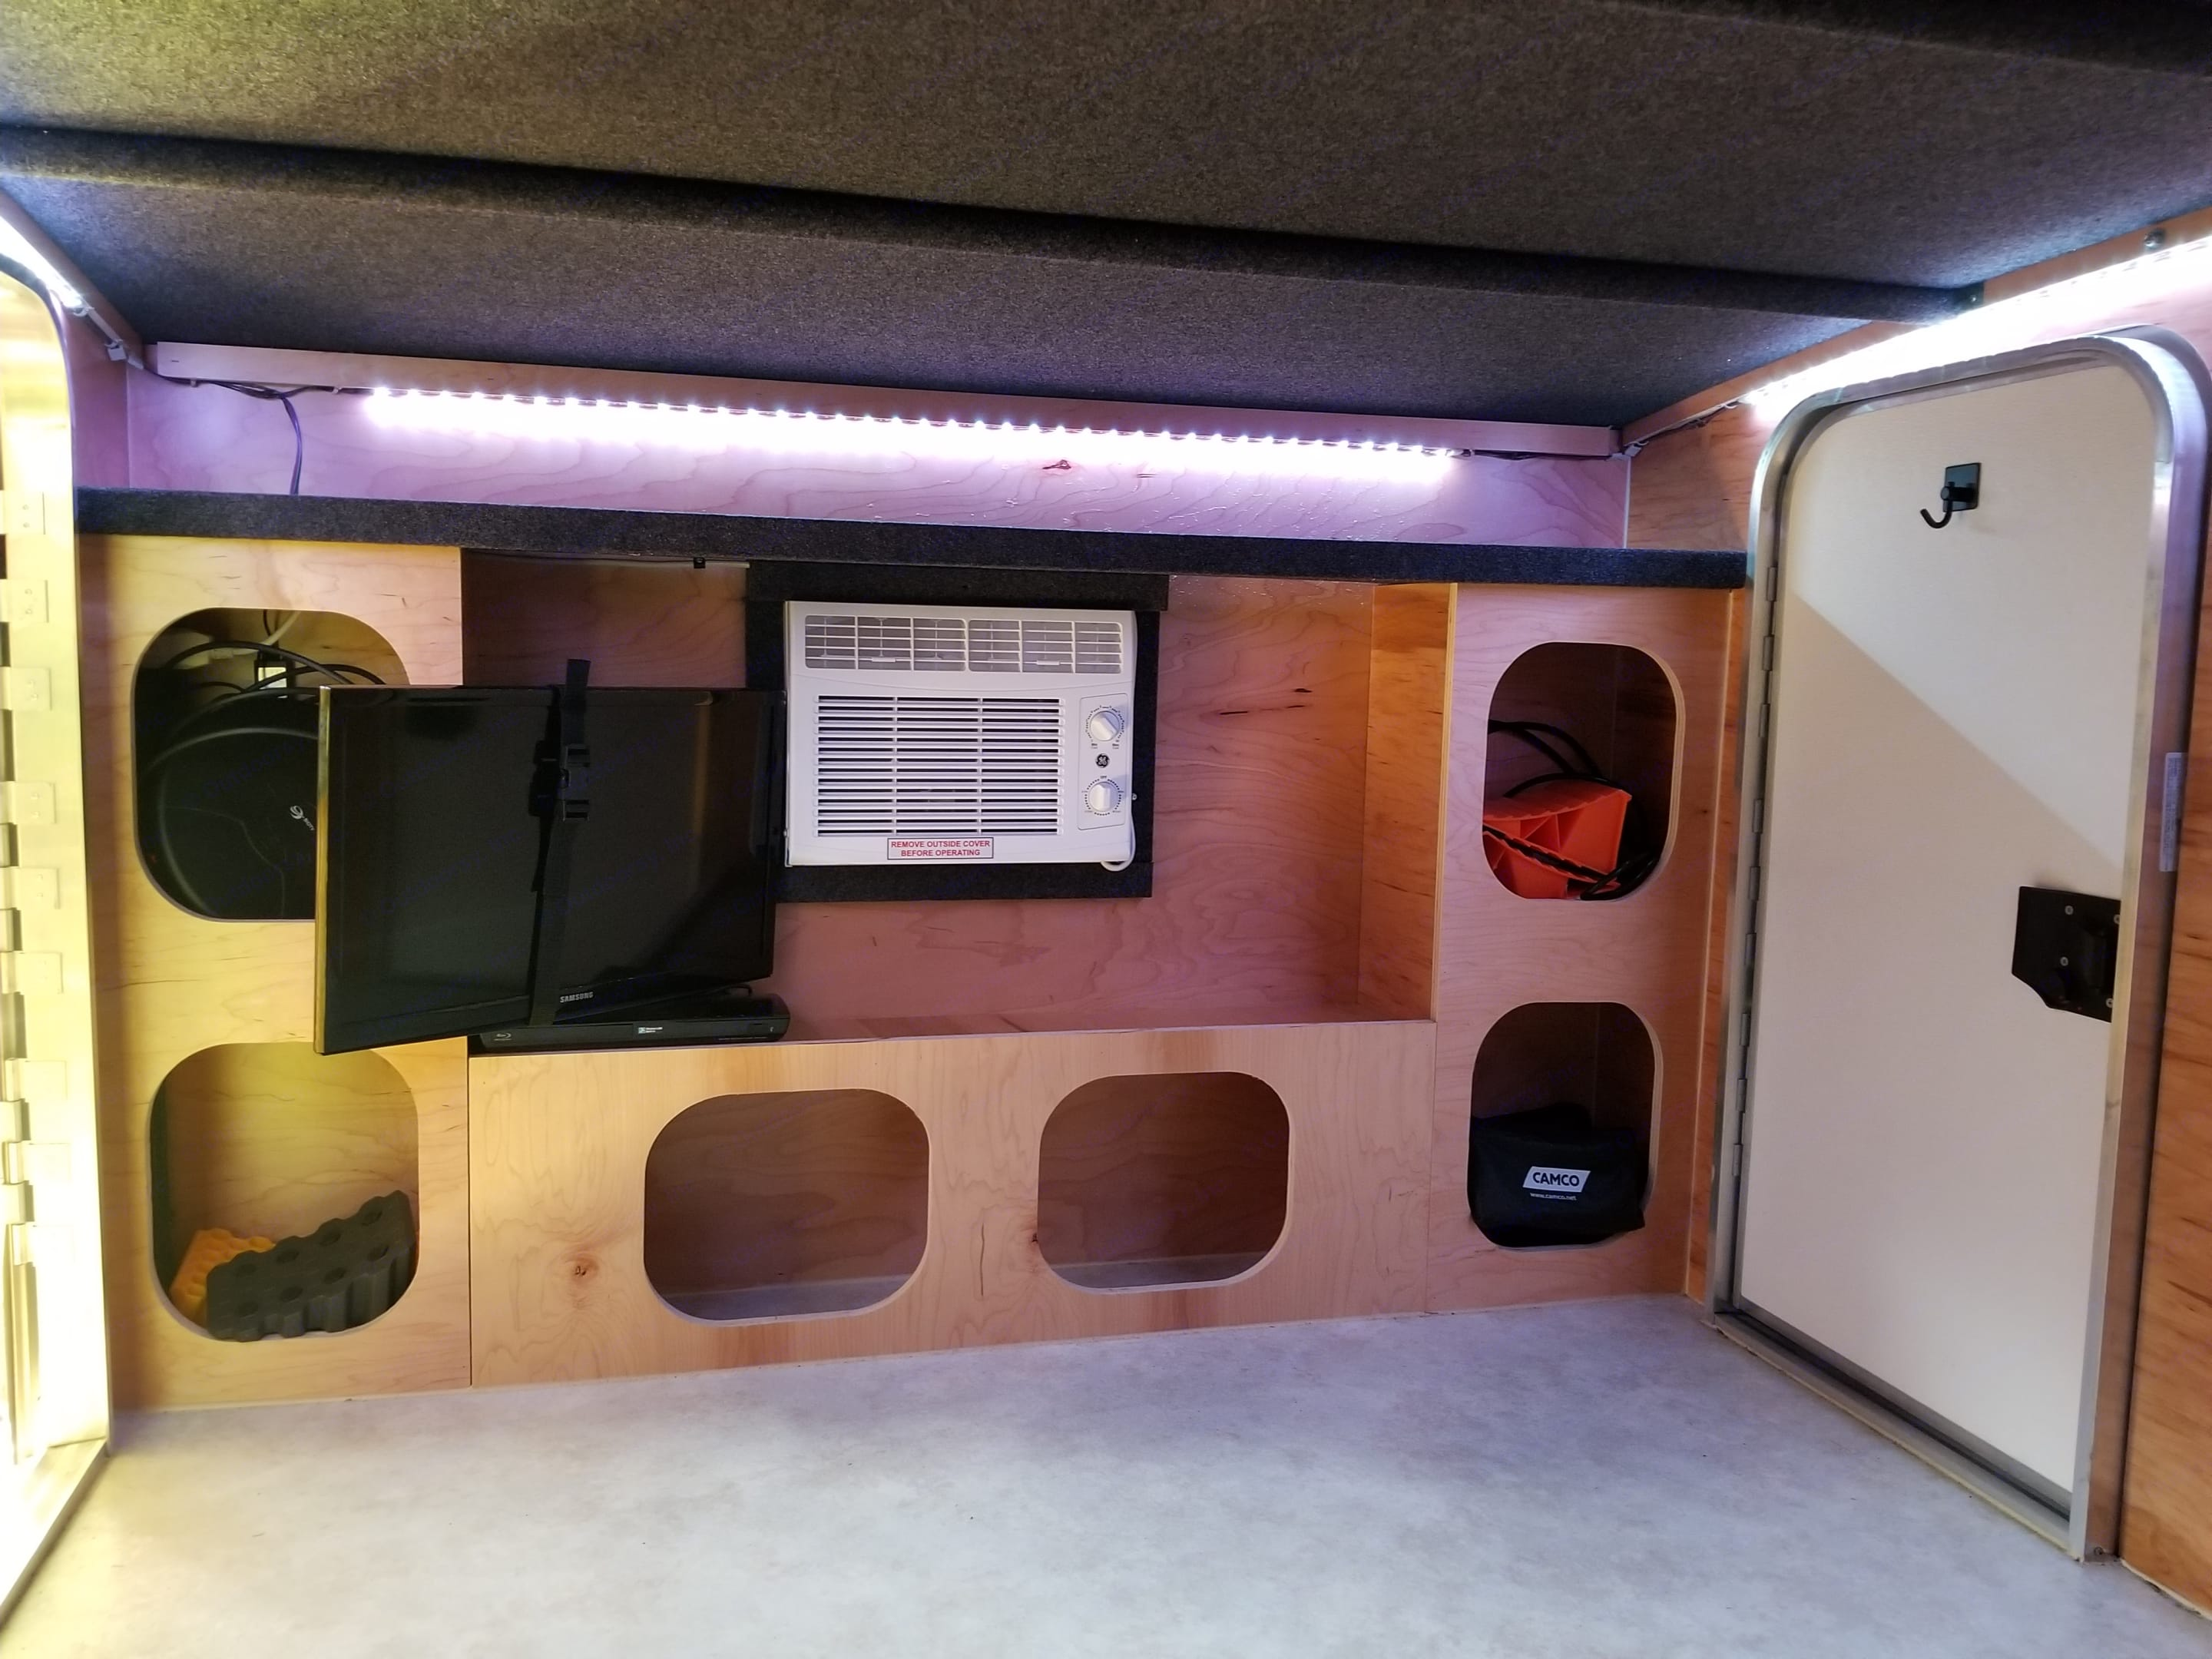 A/C, Storage, and TV with Blu-Ray player. Runaway Campers Rangerunner 2019